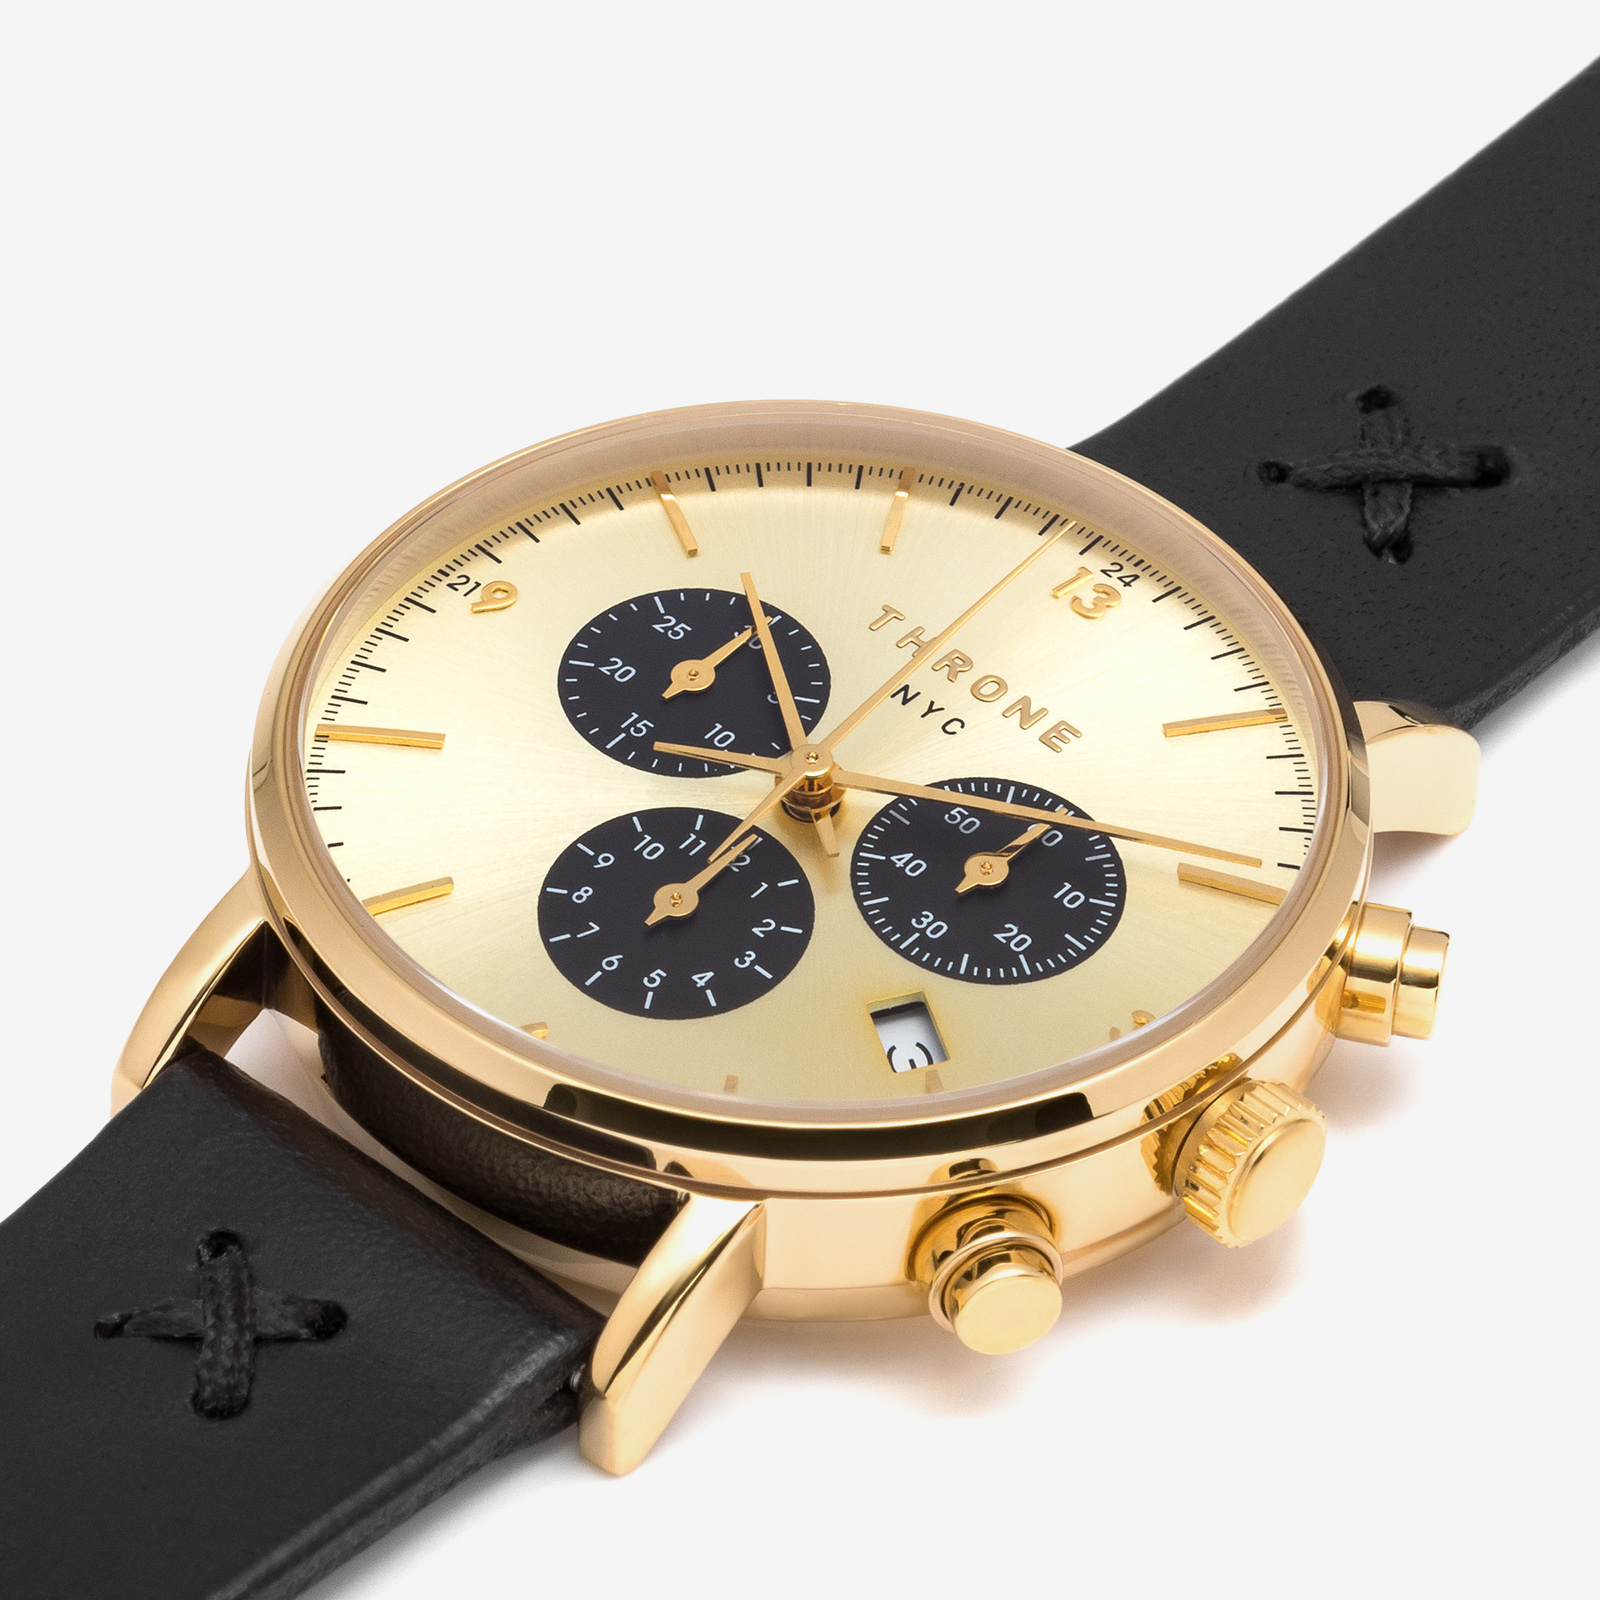 Golden watch product photography